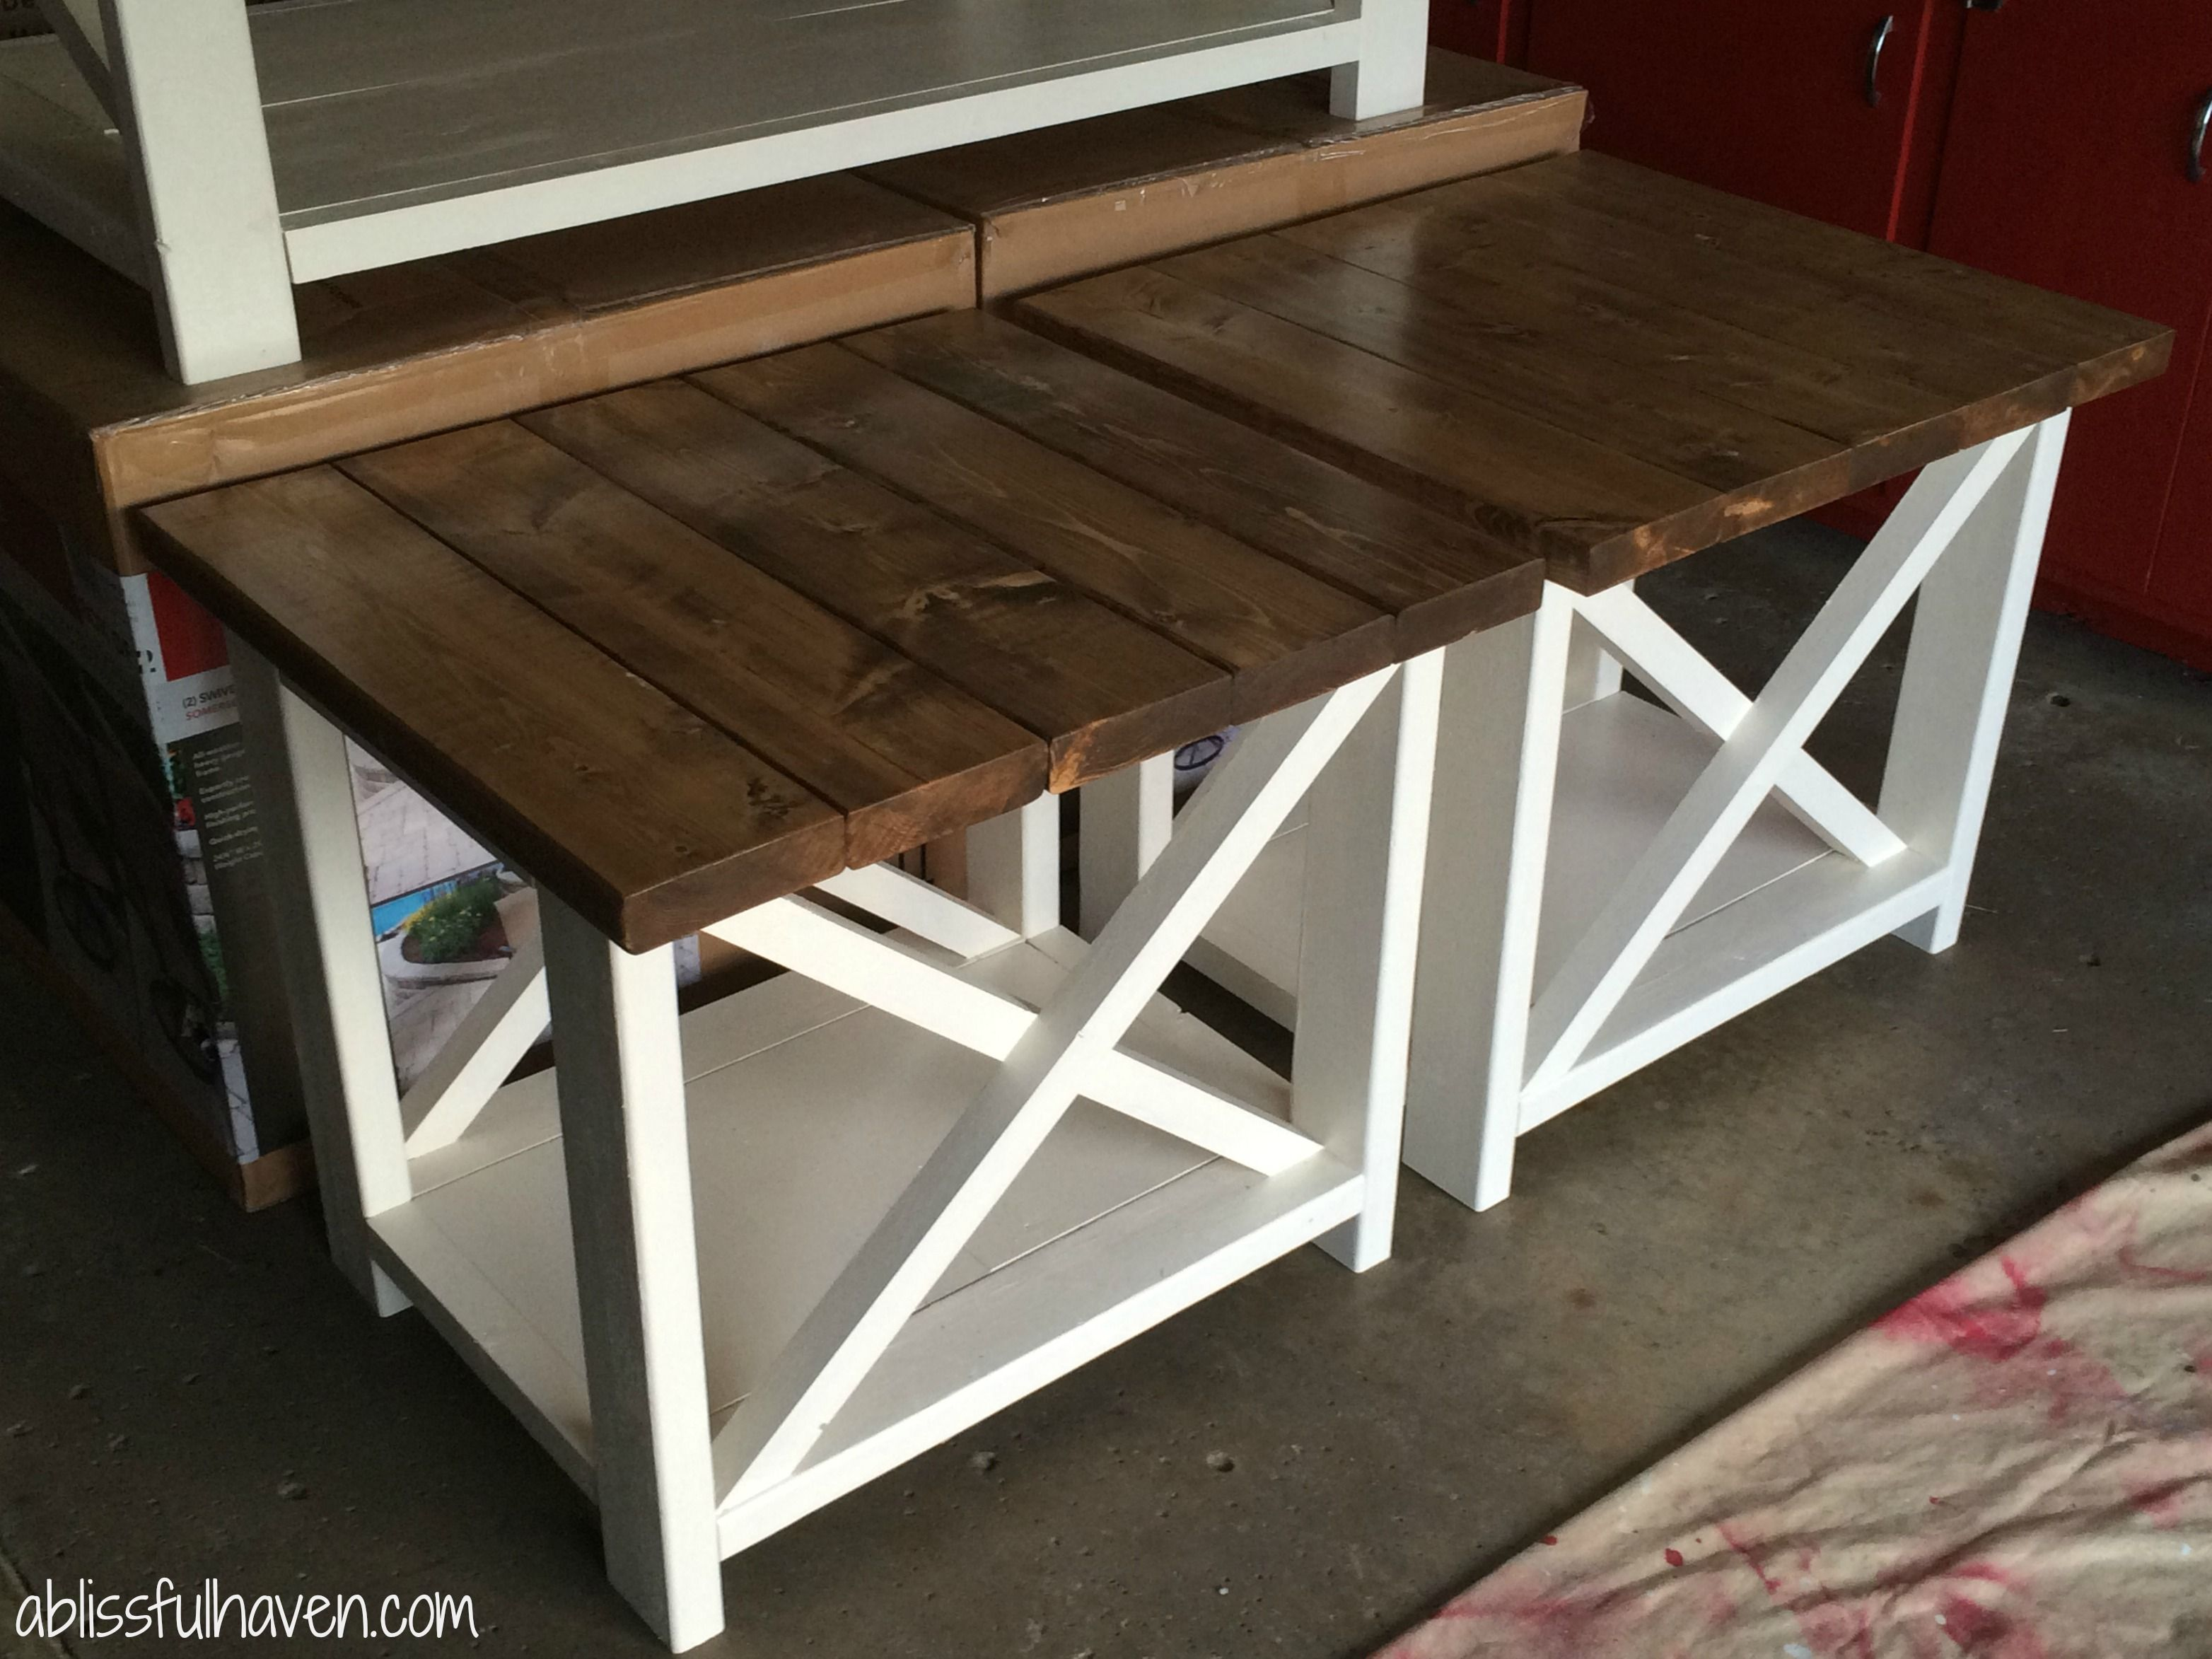 DIY End Tables with Step by Step Tutorials   DIY Farmhouse End Tables    Cheap and Easy End Table Projects and Plans   Wood  Storage  Pallet  Crate. DIY Farmhouse End Tables   DIY Projects   Pinterest   DIY